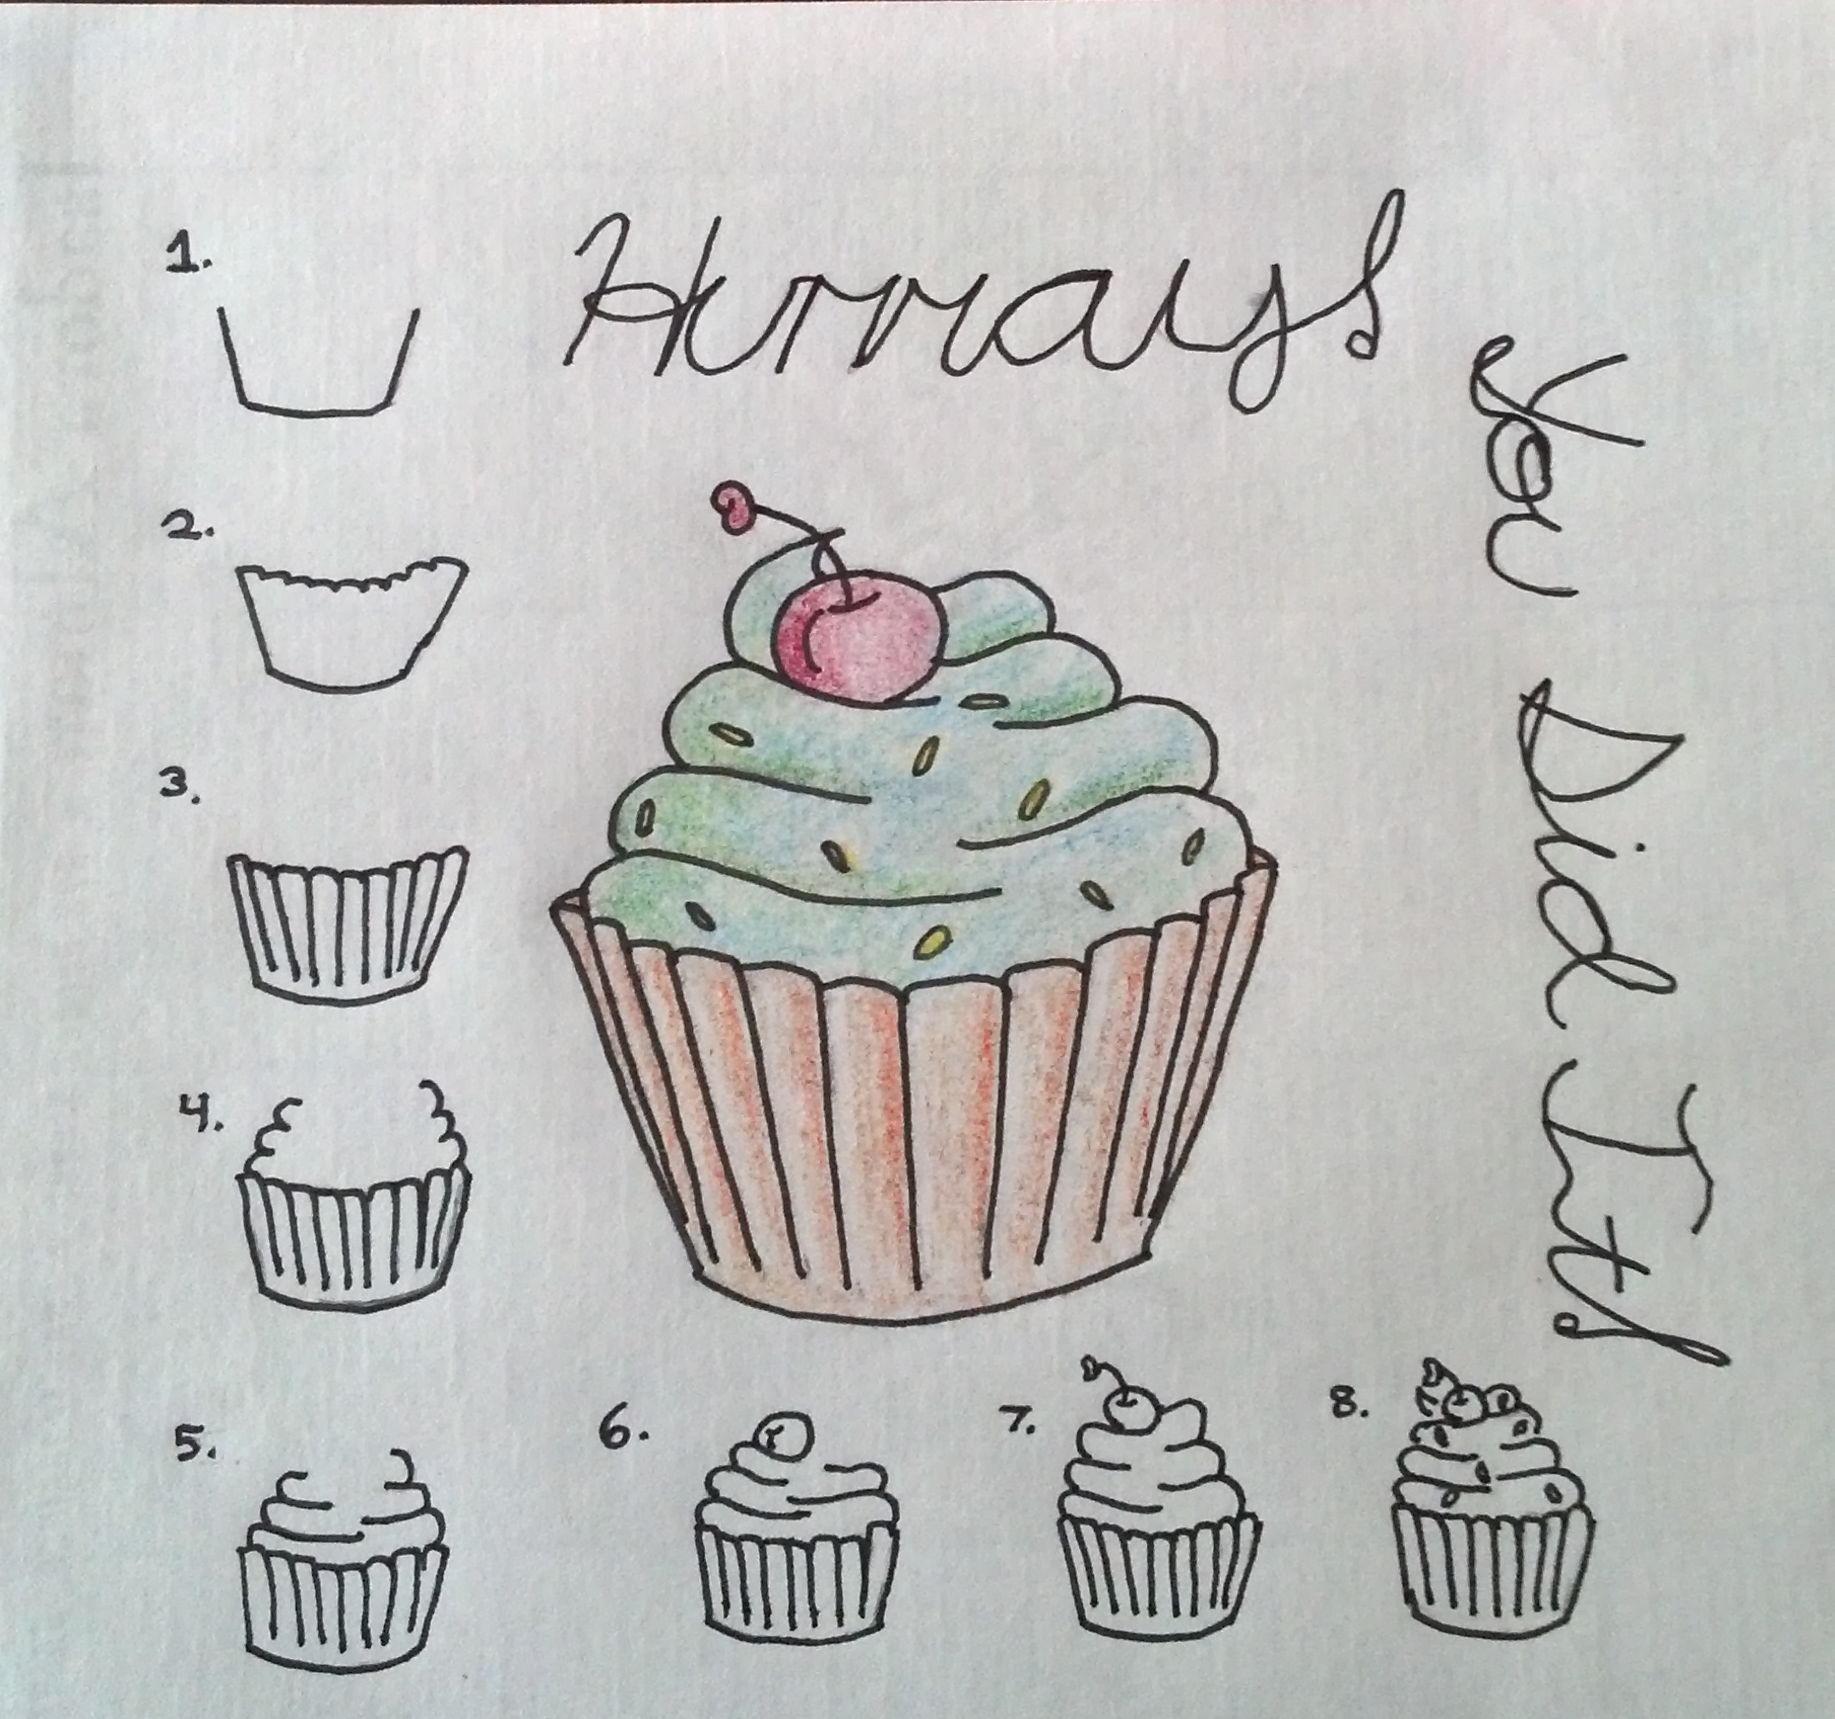 How to draw a cupcake a simple step by step colorful cupcake great to draw on cards or anything else fun to draw for all ages